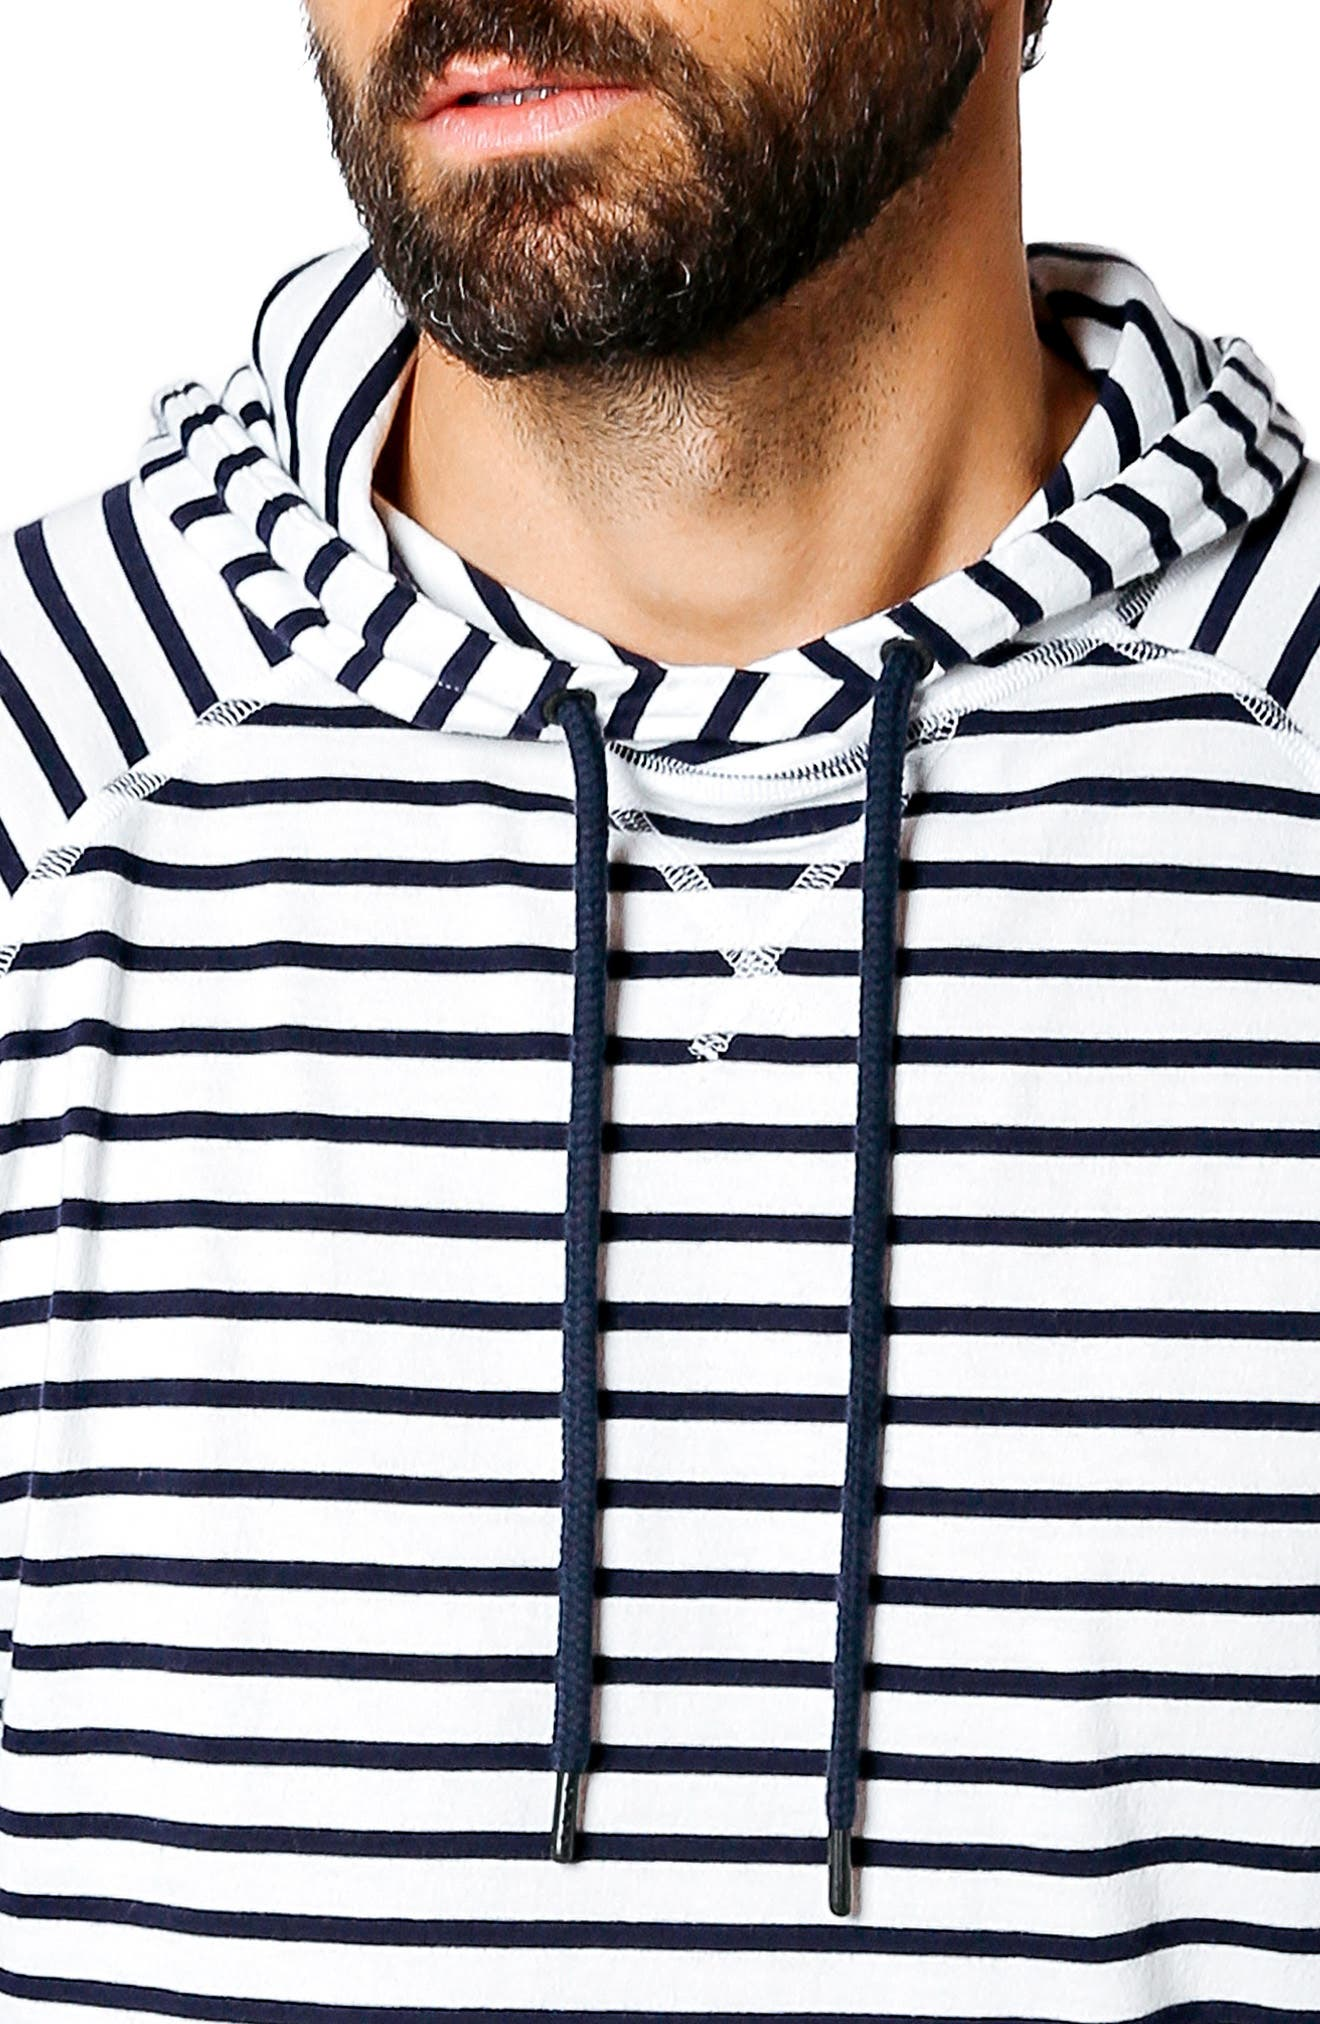 Trim Fit Hoodie,                             Alternate thumbnail 4, color,                             White / Navy